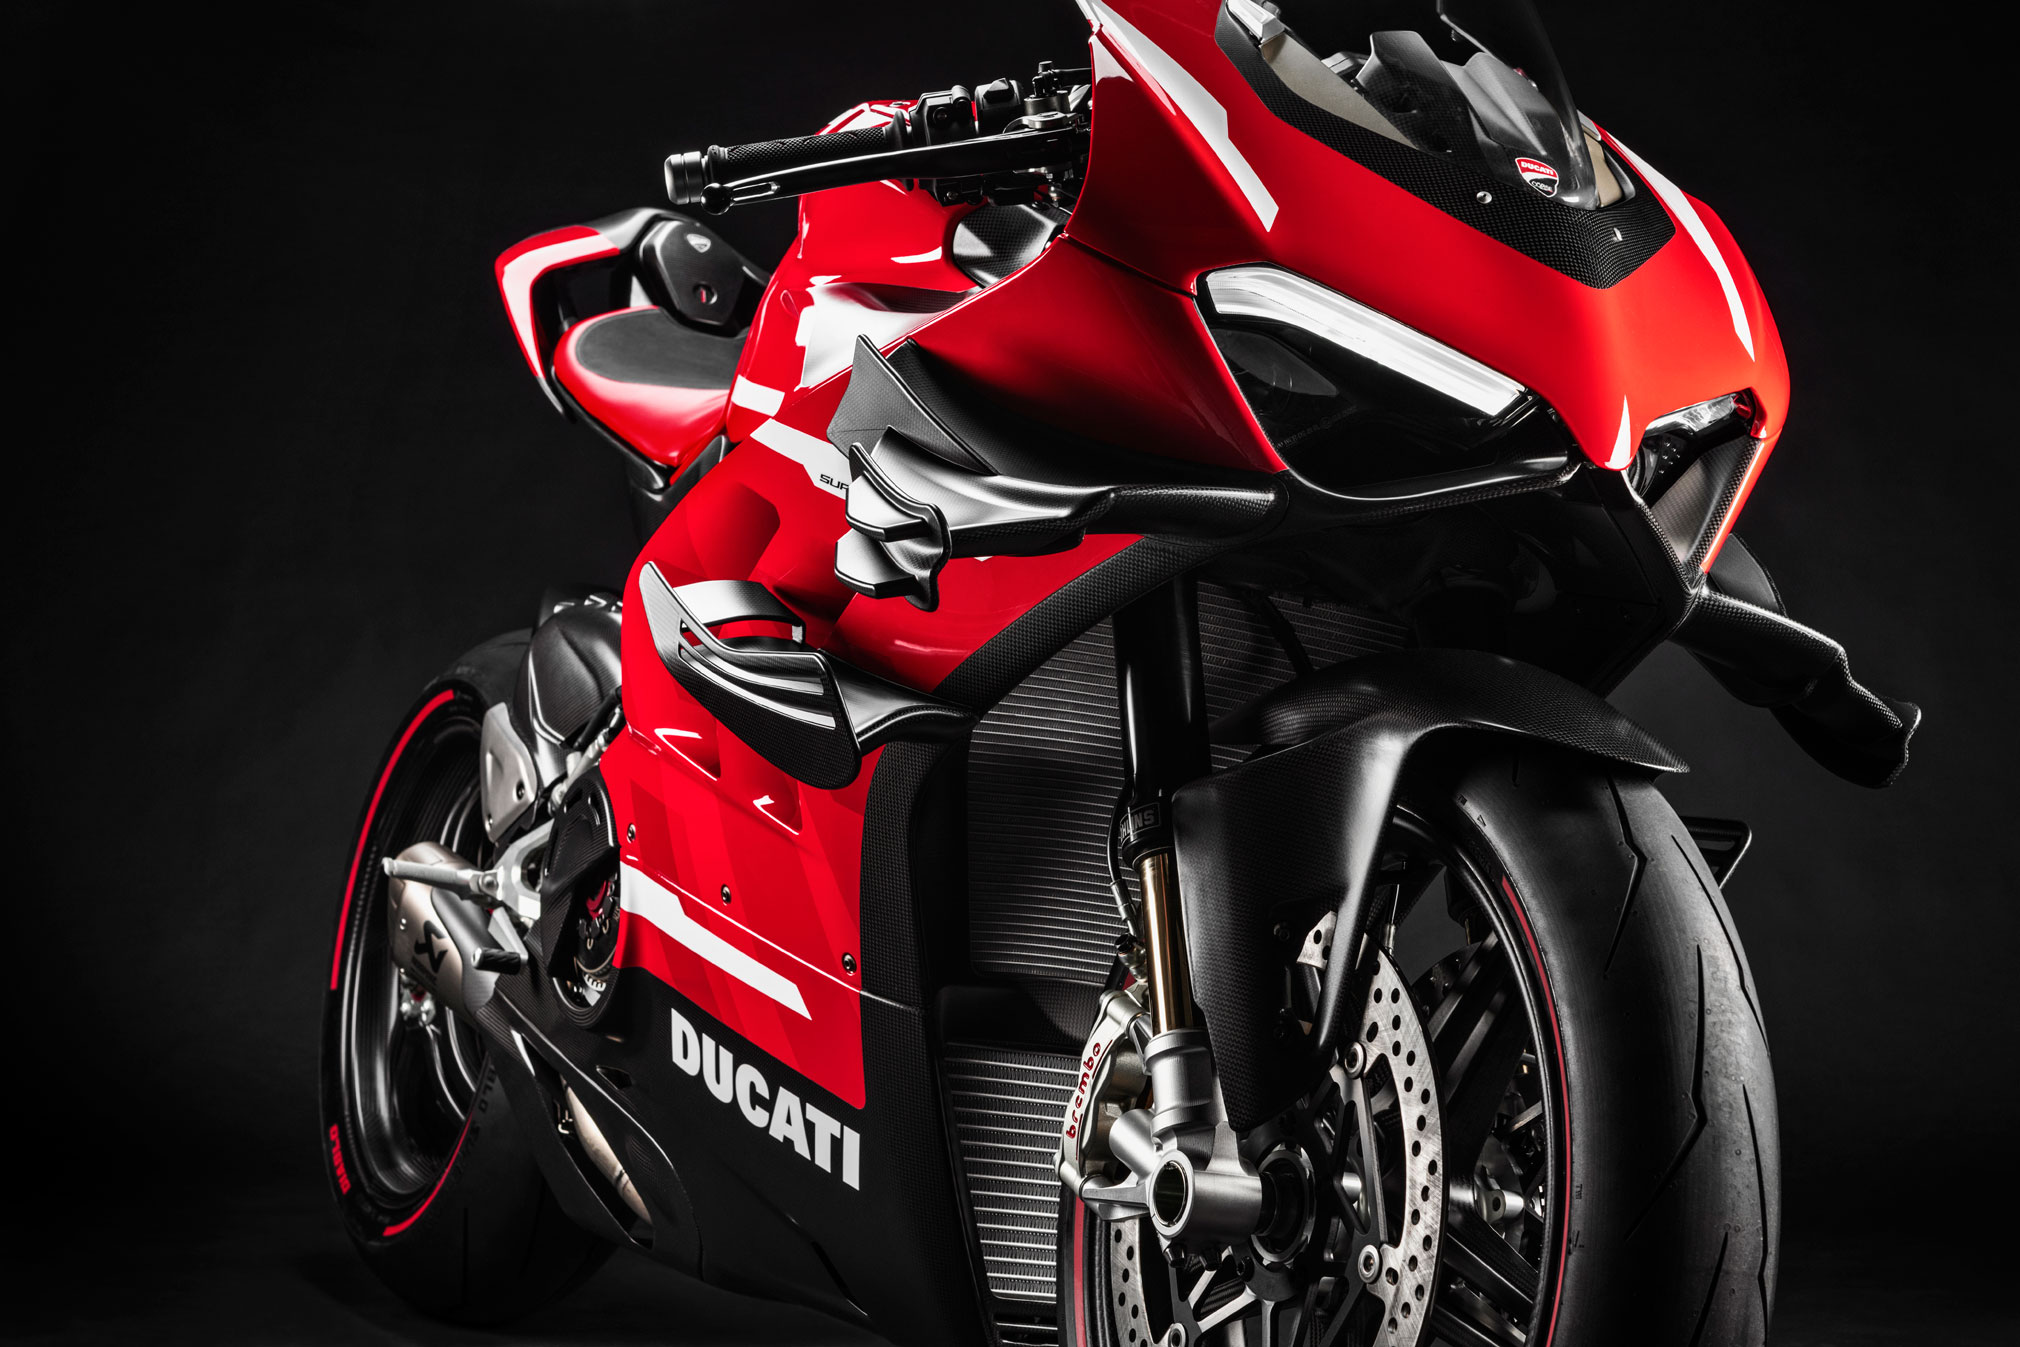 2020 Ducati Superleggera V4